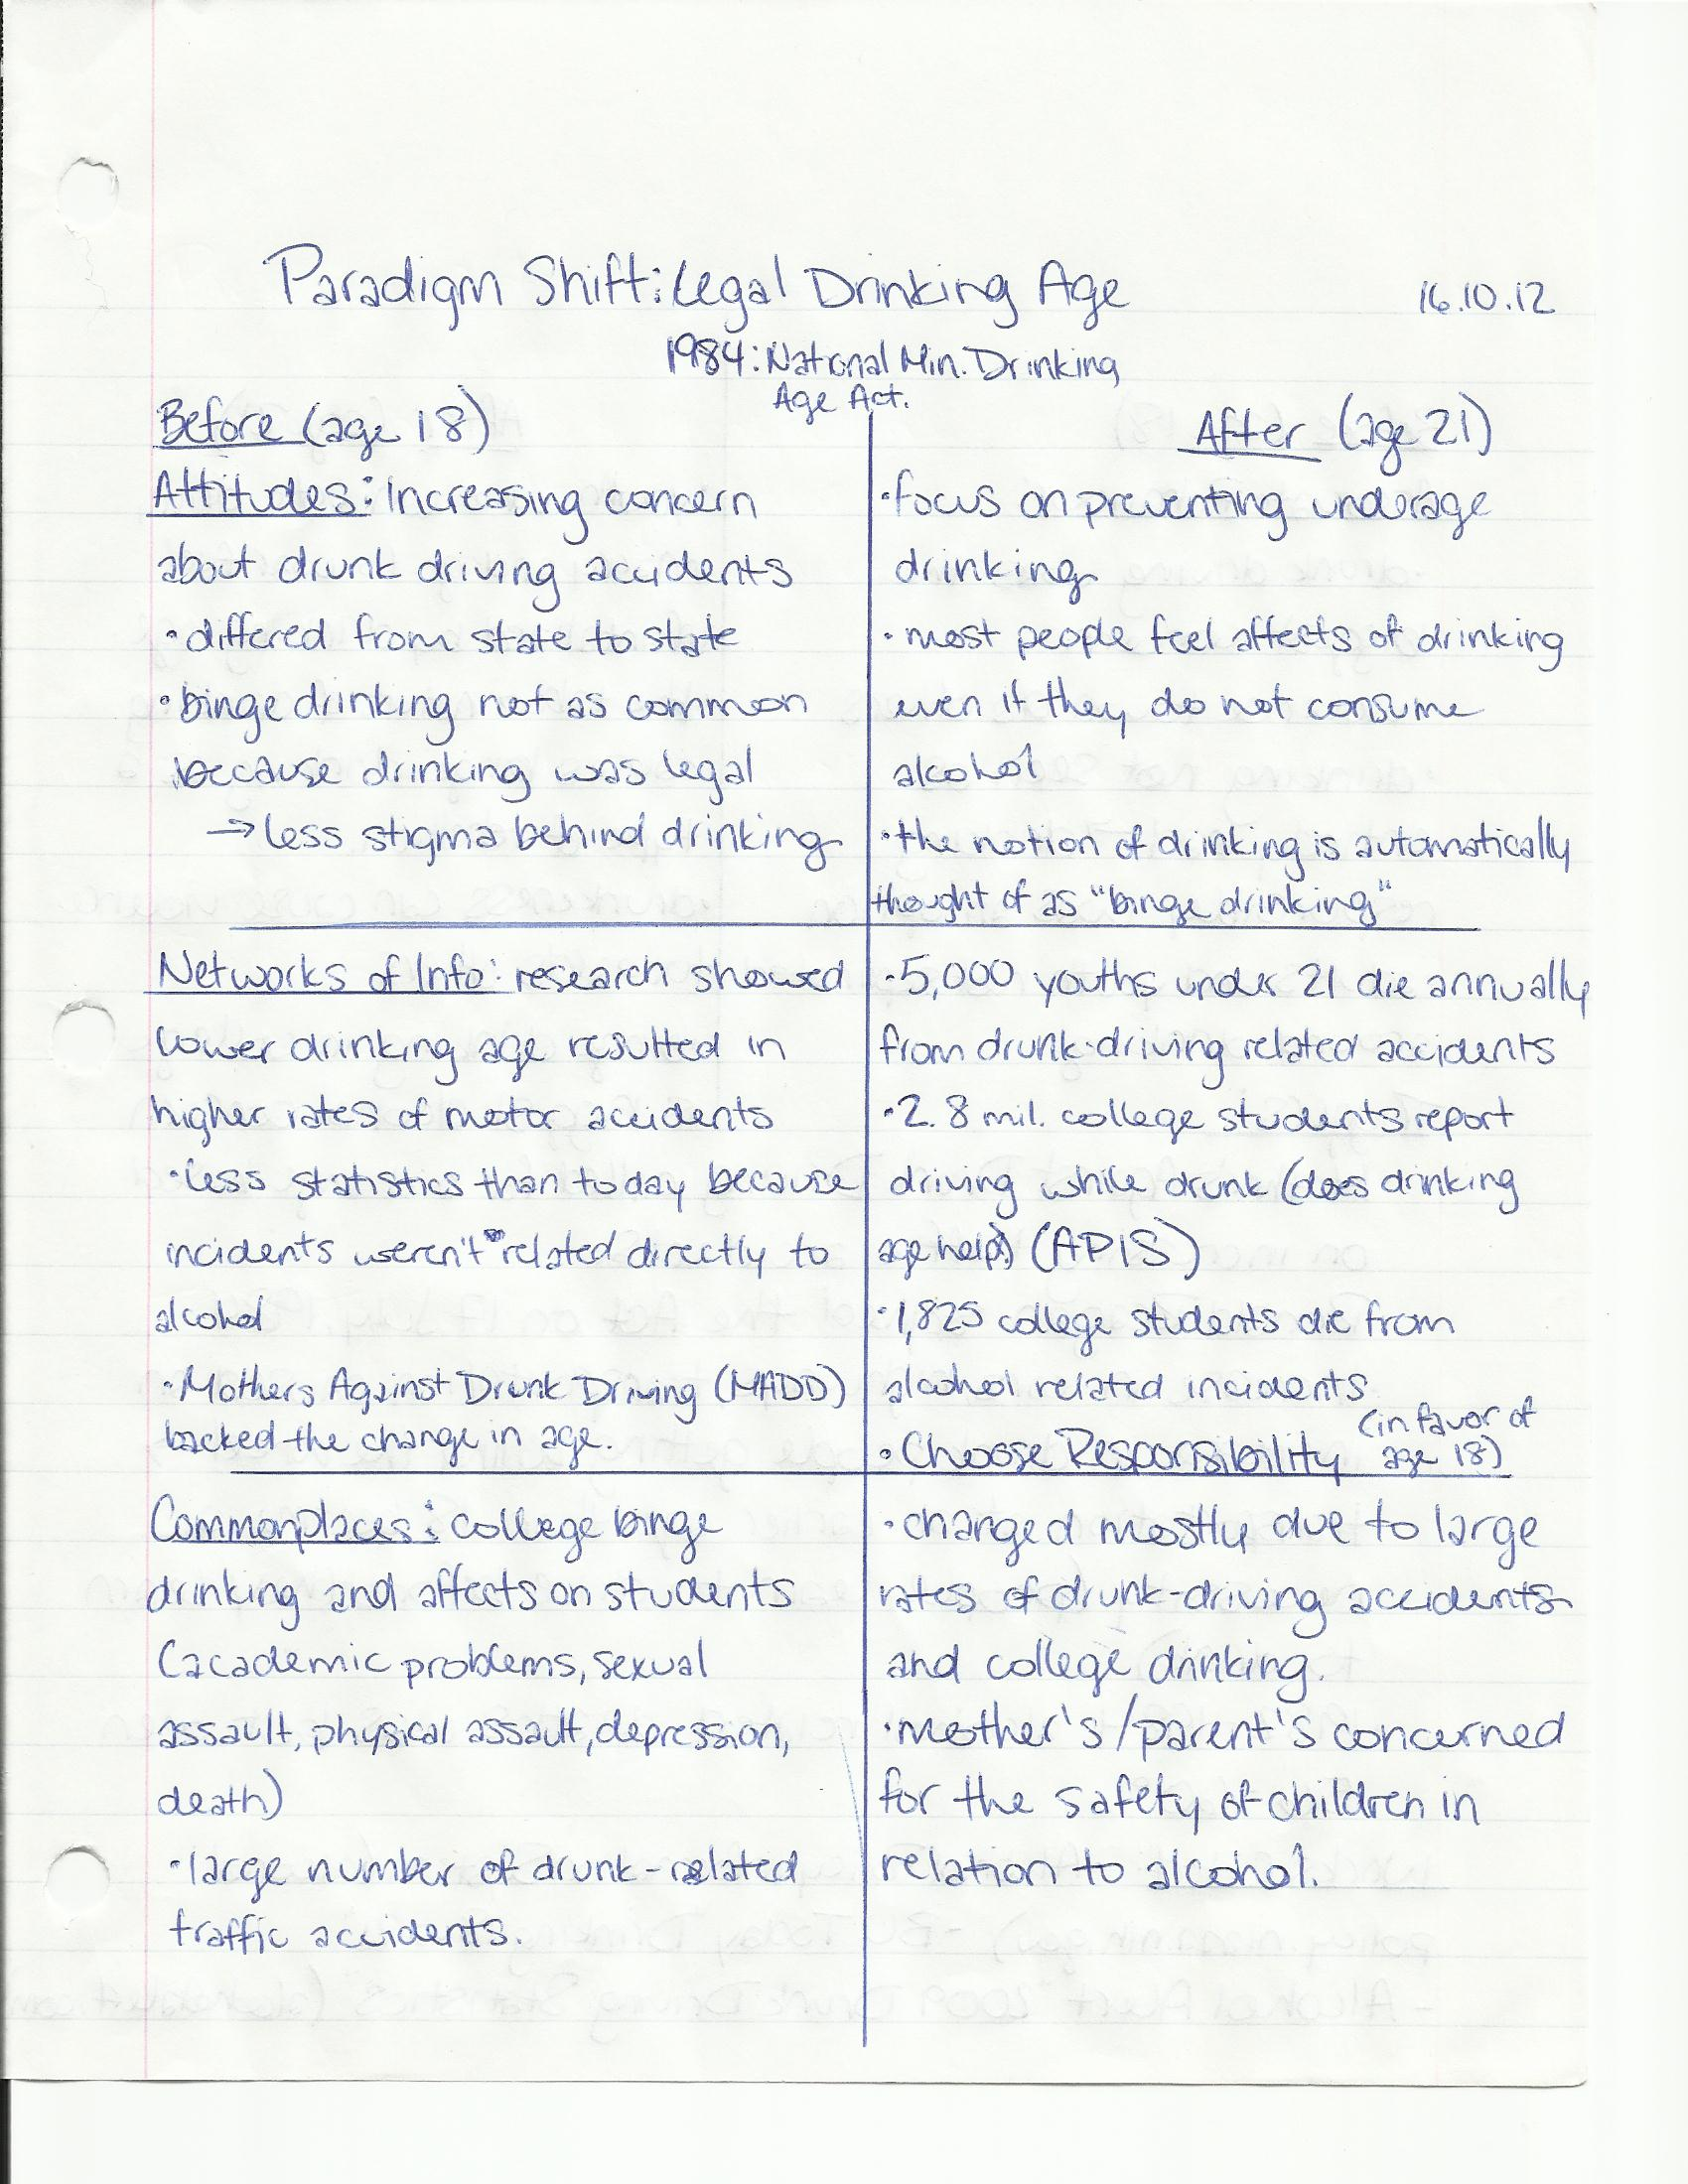 raising the drinking age to 21 essay